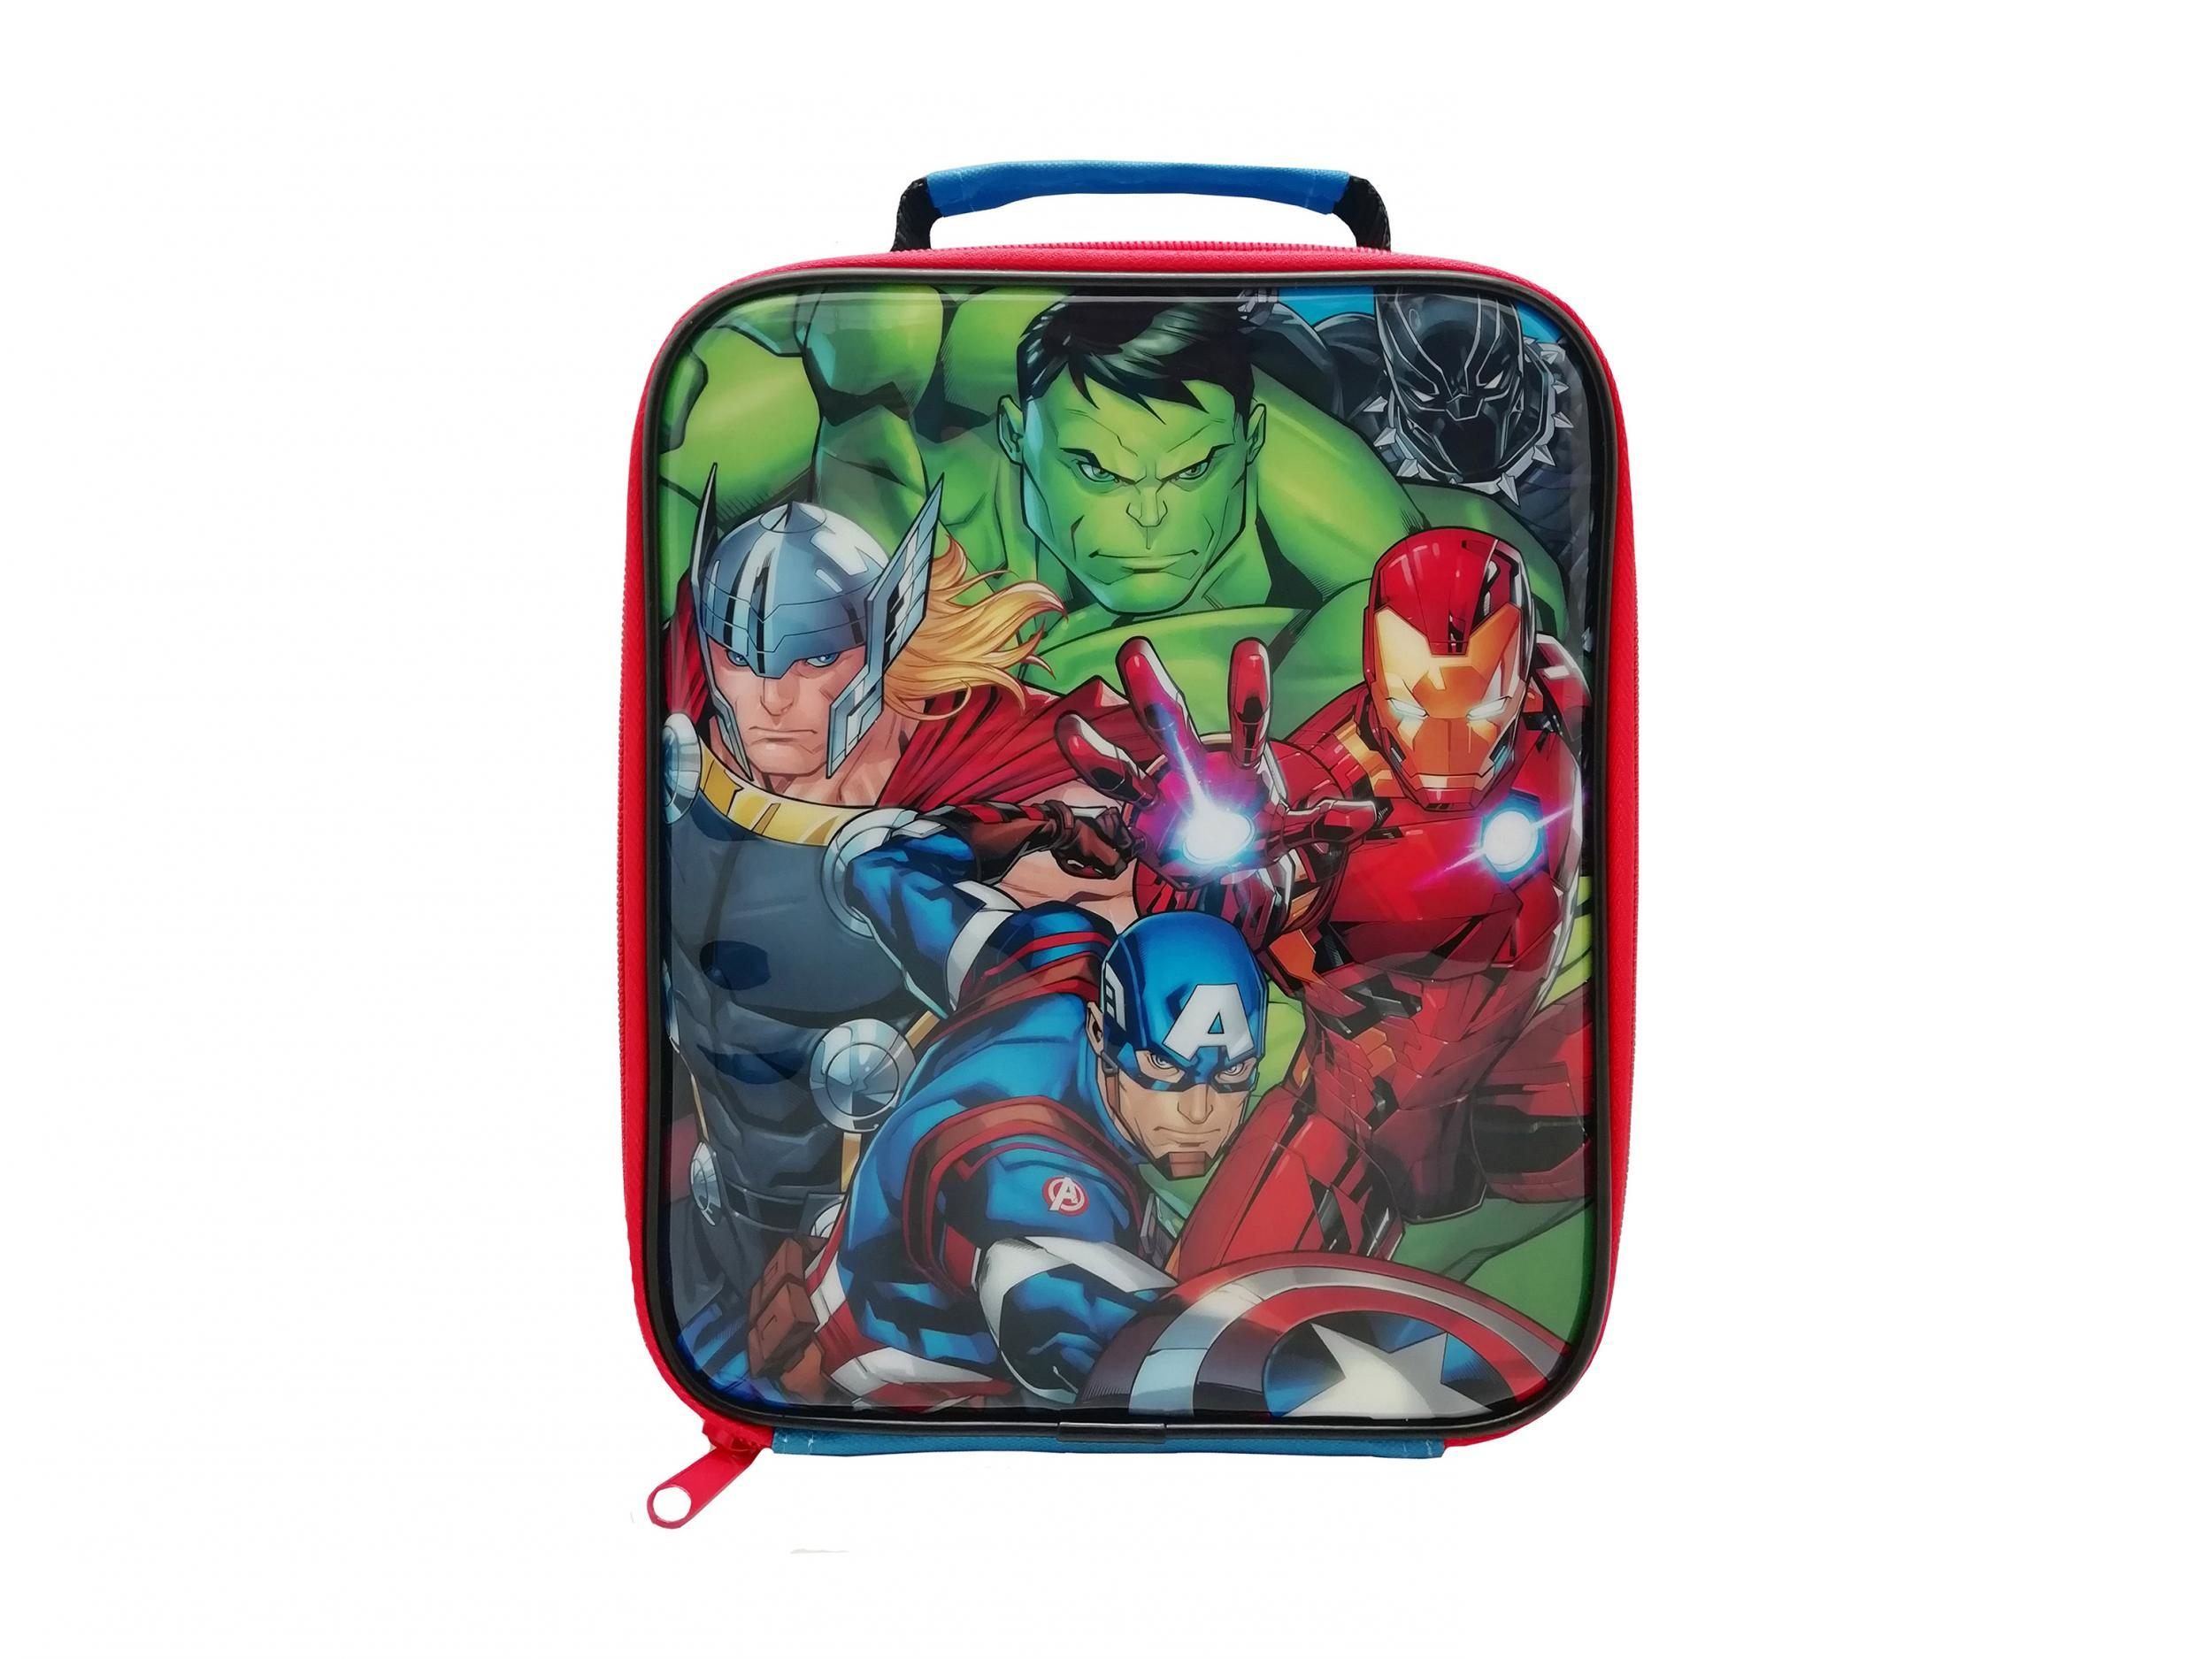 f6f1eb8bea21 Best kids' lunch box that is leak-proof, easily washable and fun to use